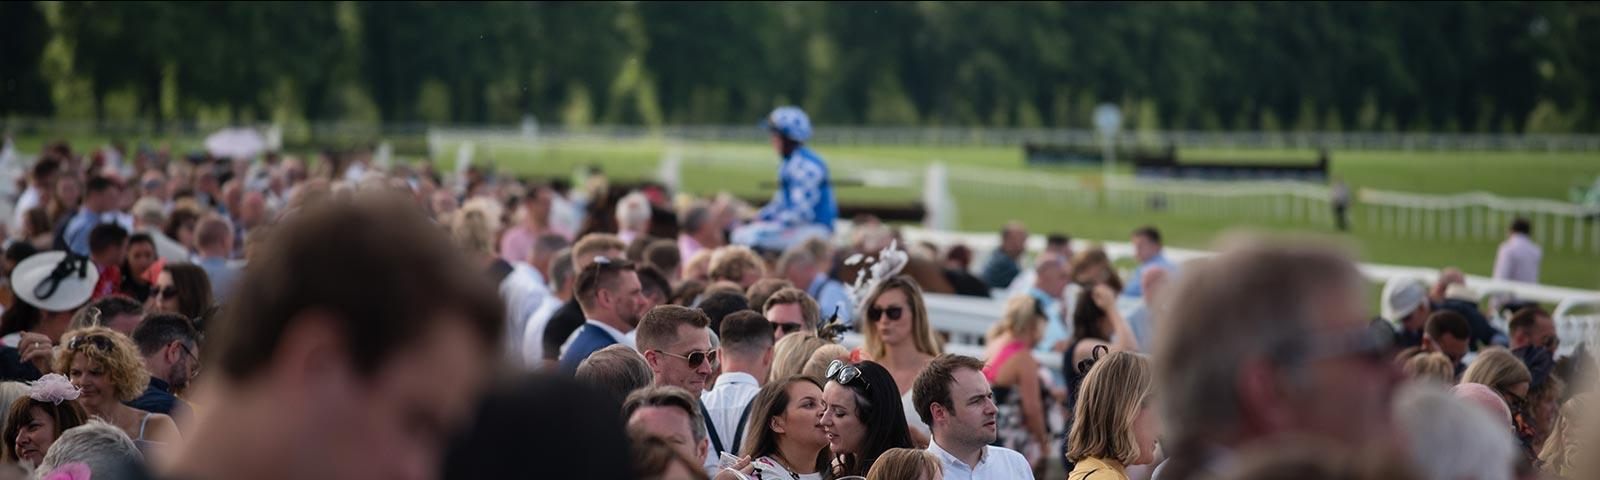 Crowds at the races at Worcester Racecourse.